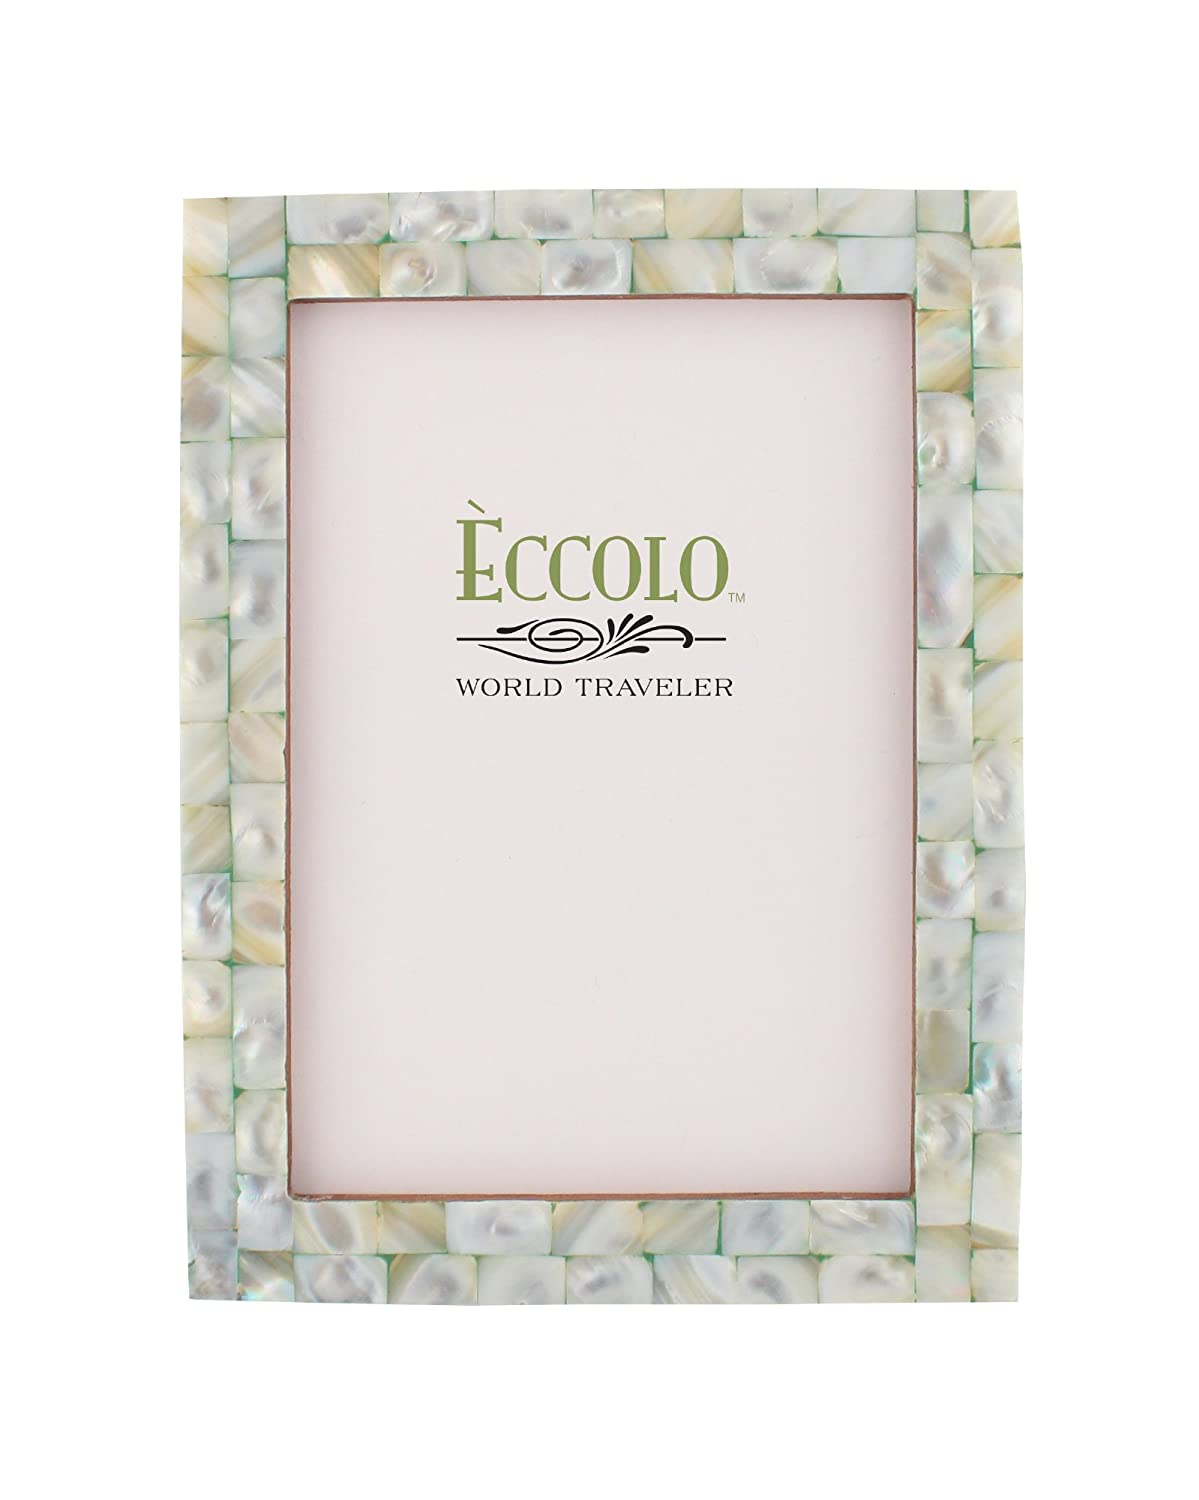 amazoncom eccolo world traveler naturals collection mother of pearl frame holds 8 by 10 inch photo green single frames - Mother Of Pearl Picture Frame